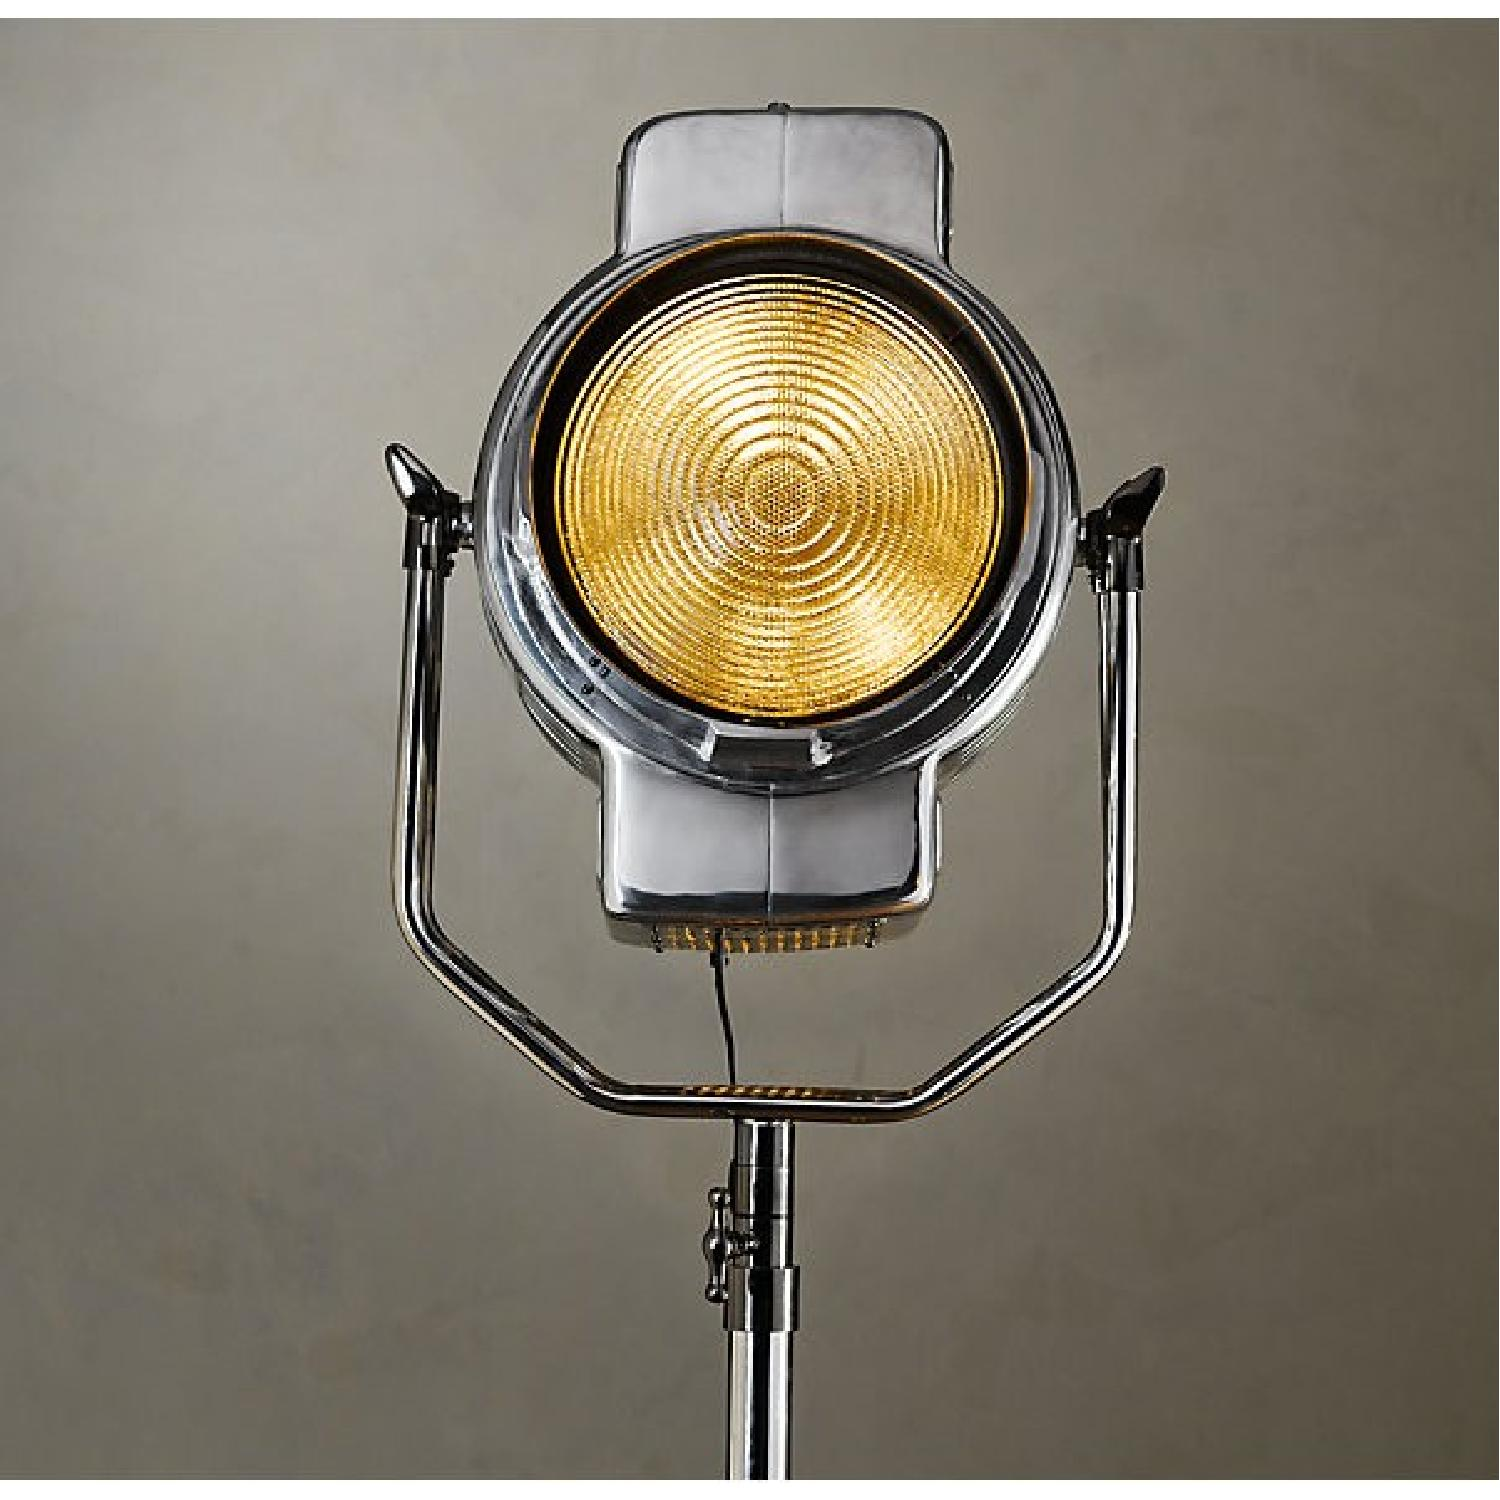 Restoration Hardware 1940s Hollywood Studio Floor Lamp - image-6